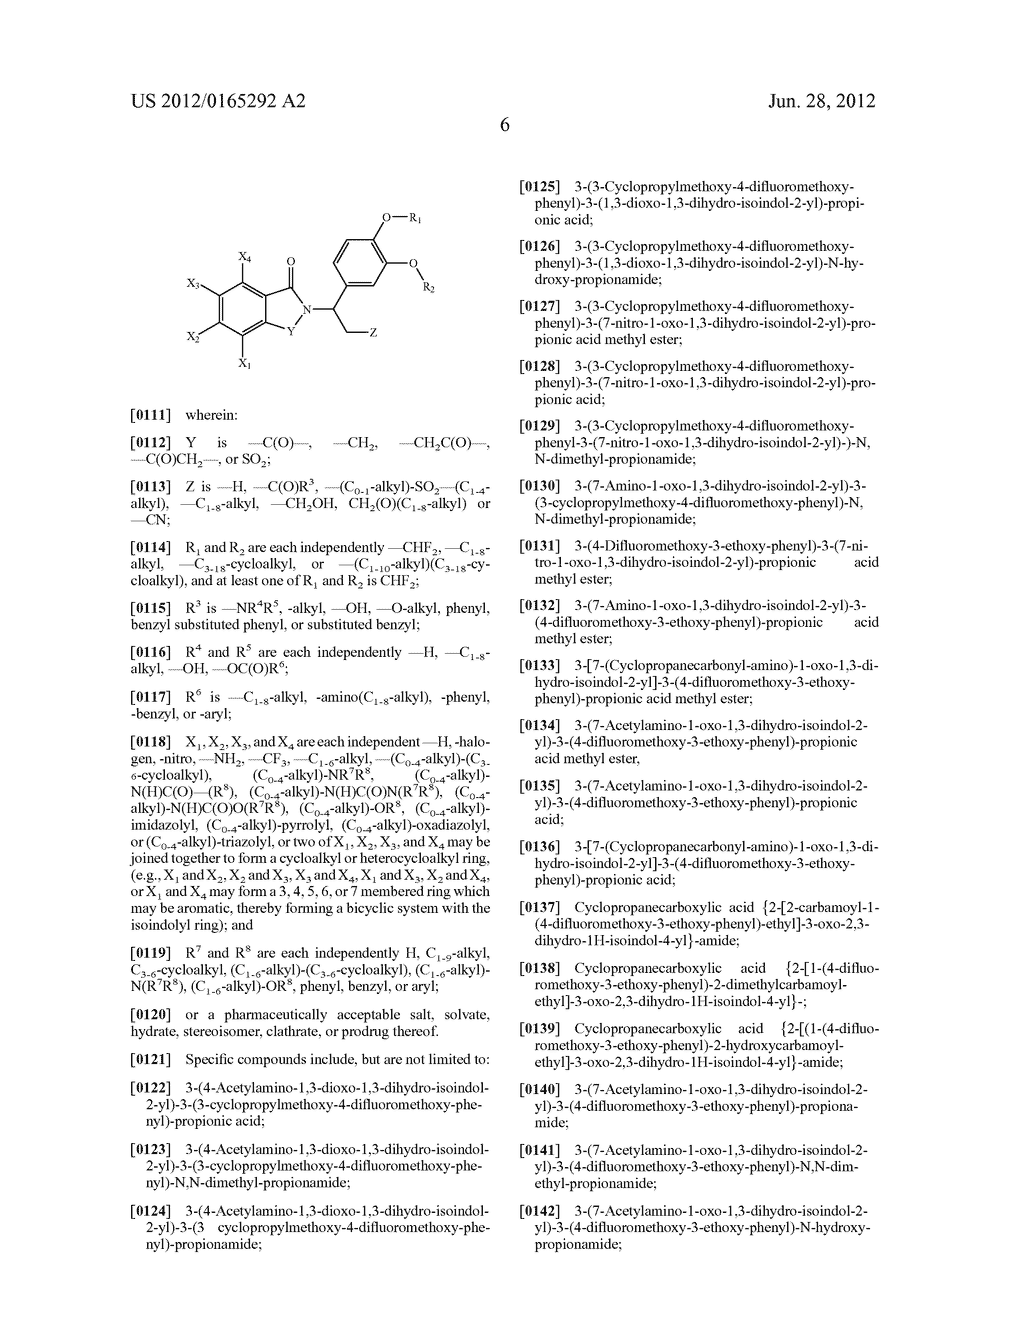 METHODS FOR TREATMENT OF MULTIPLE MYELOMA USING CYCLOPROPANE CARBOXYLIC     ACID {2-(Is)-(3-eTHOXY-4METHOXY-PHENYL)-2-METHANESULFONYL-ETHYL}-3-OXO-2.-    3-DIHYDRO-1H-ISOINDOL-4-YL}-AMIDE - diagram, schematic, and image 07